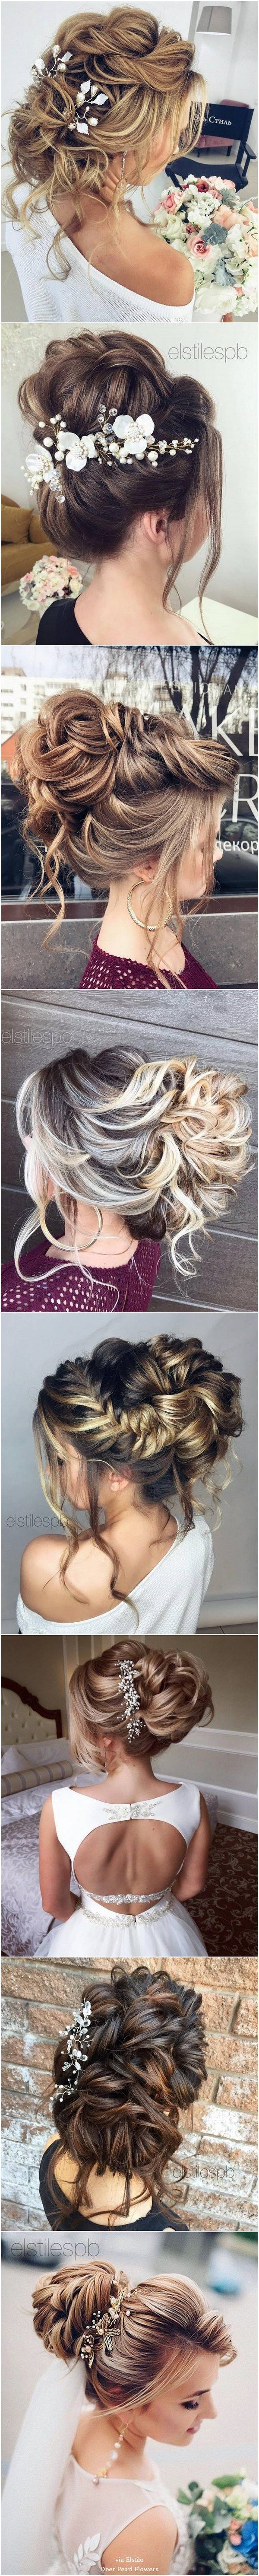 Elstile long wedding hairstyle inspiration hair and beauty